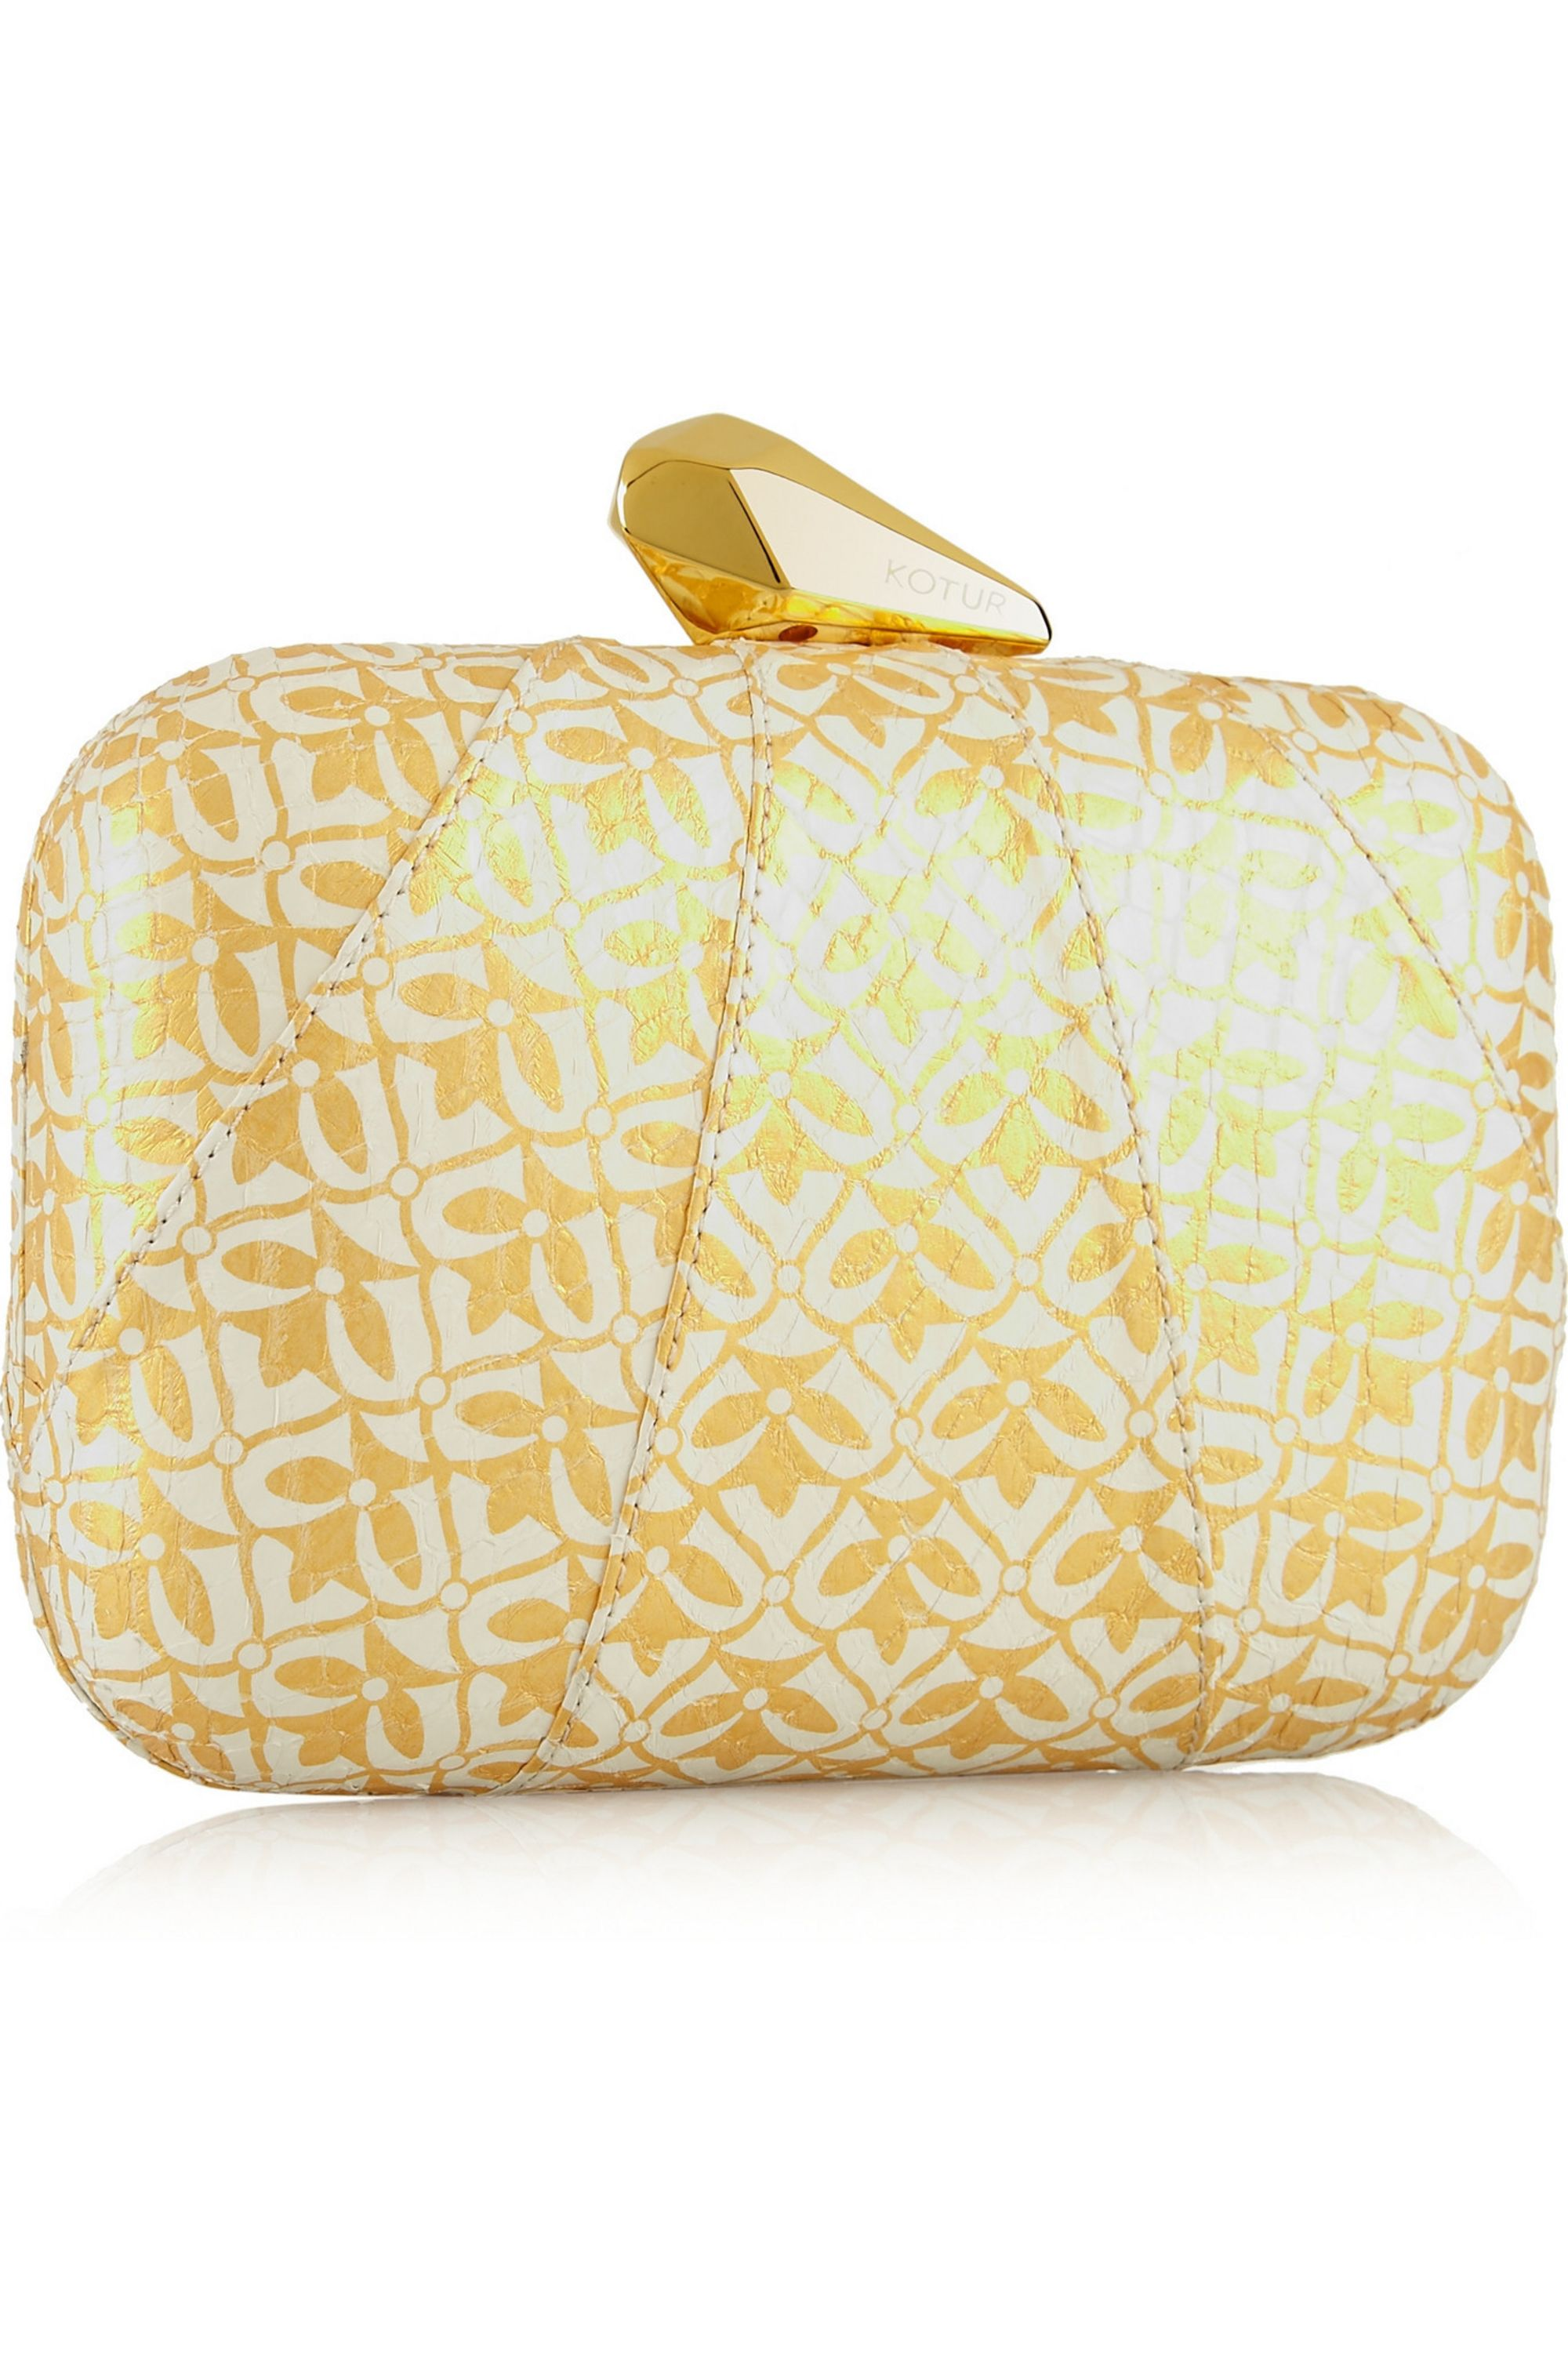 Kotur Morley printed elaphe box clutch